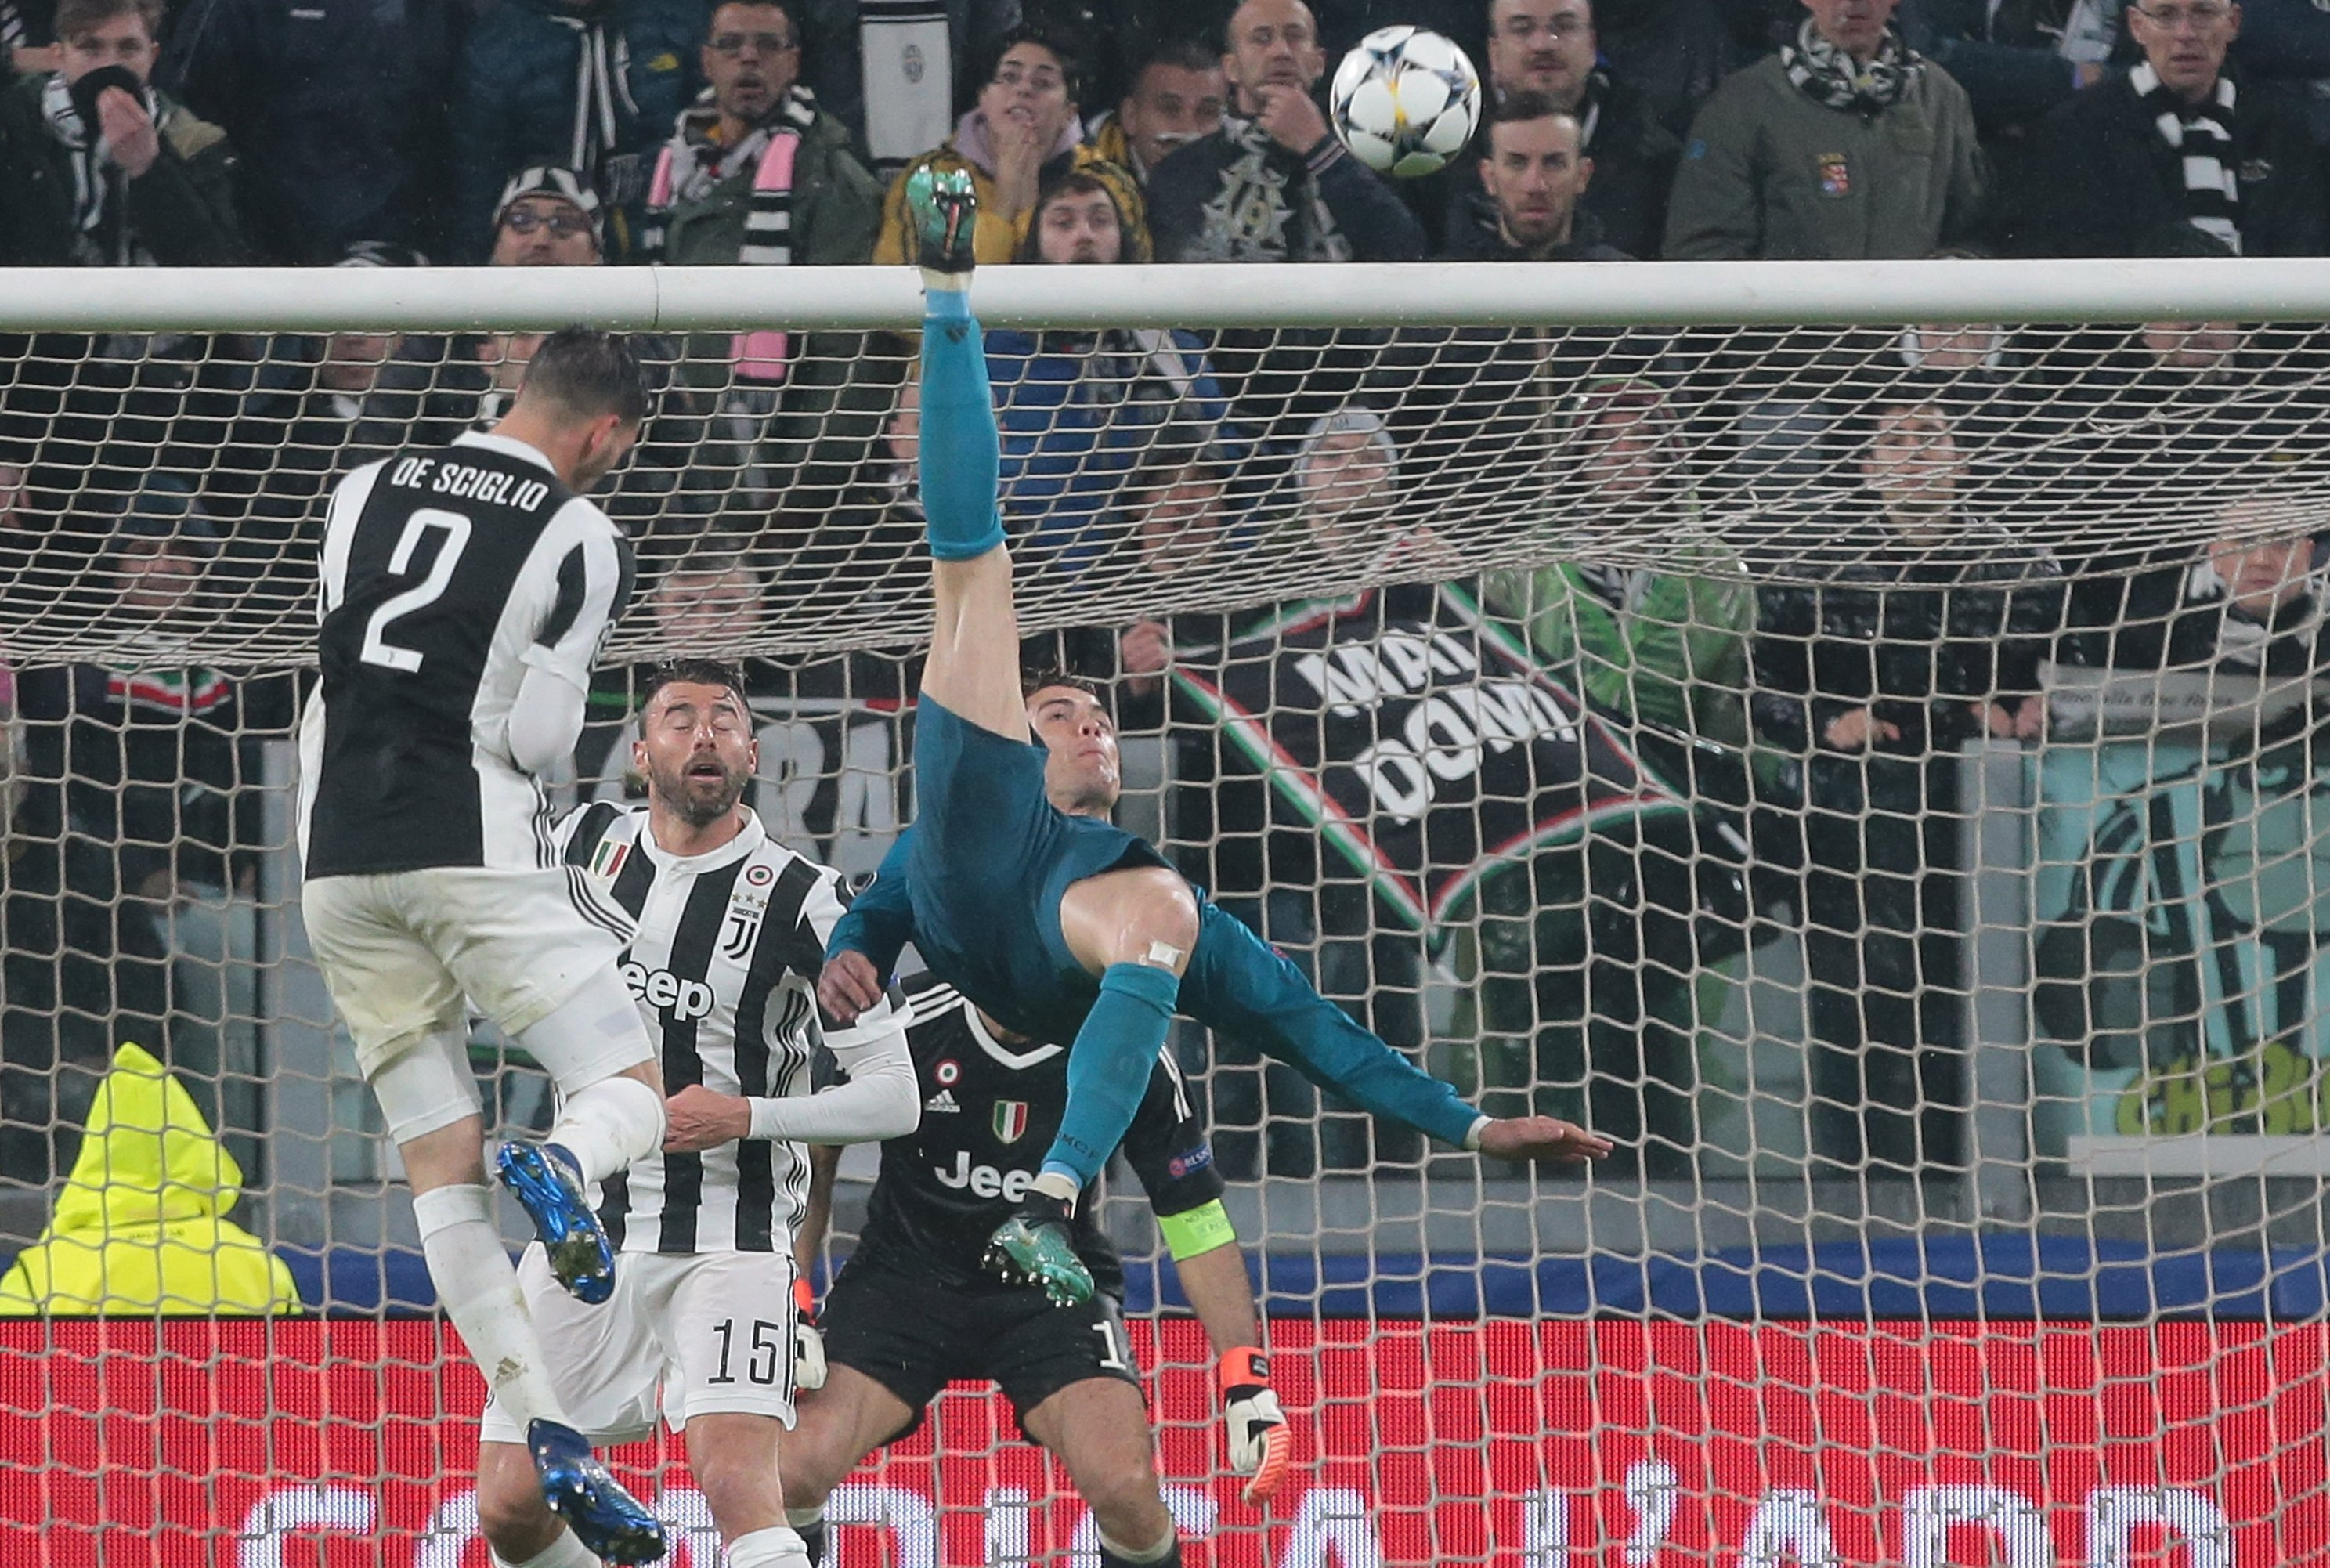 Cristiano Ronaldo Thanks Juventus Fans For Applause After Overhead Kick Goal Bleacher Report Latest News Videos And Highlights